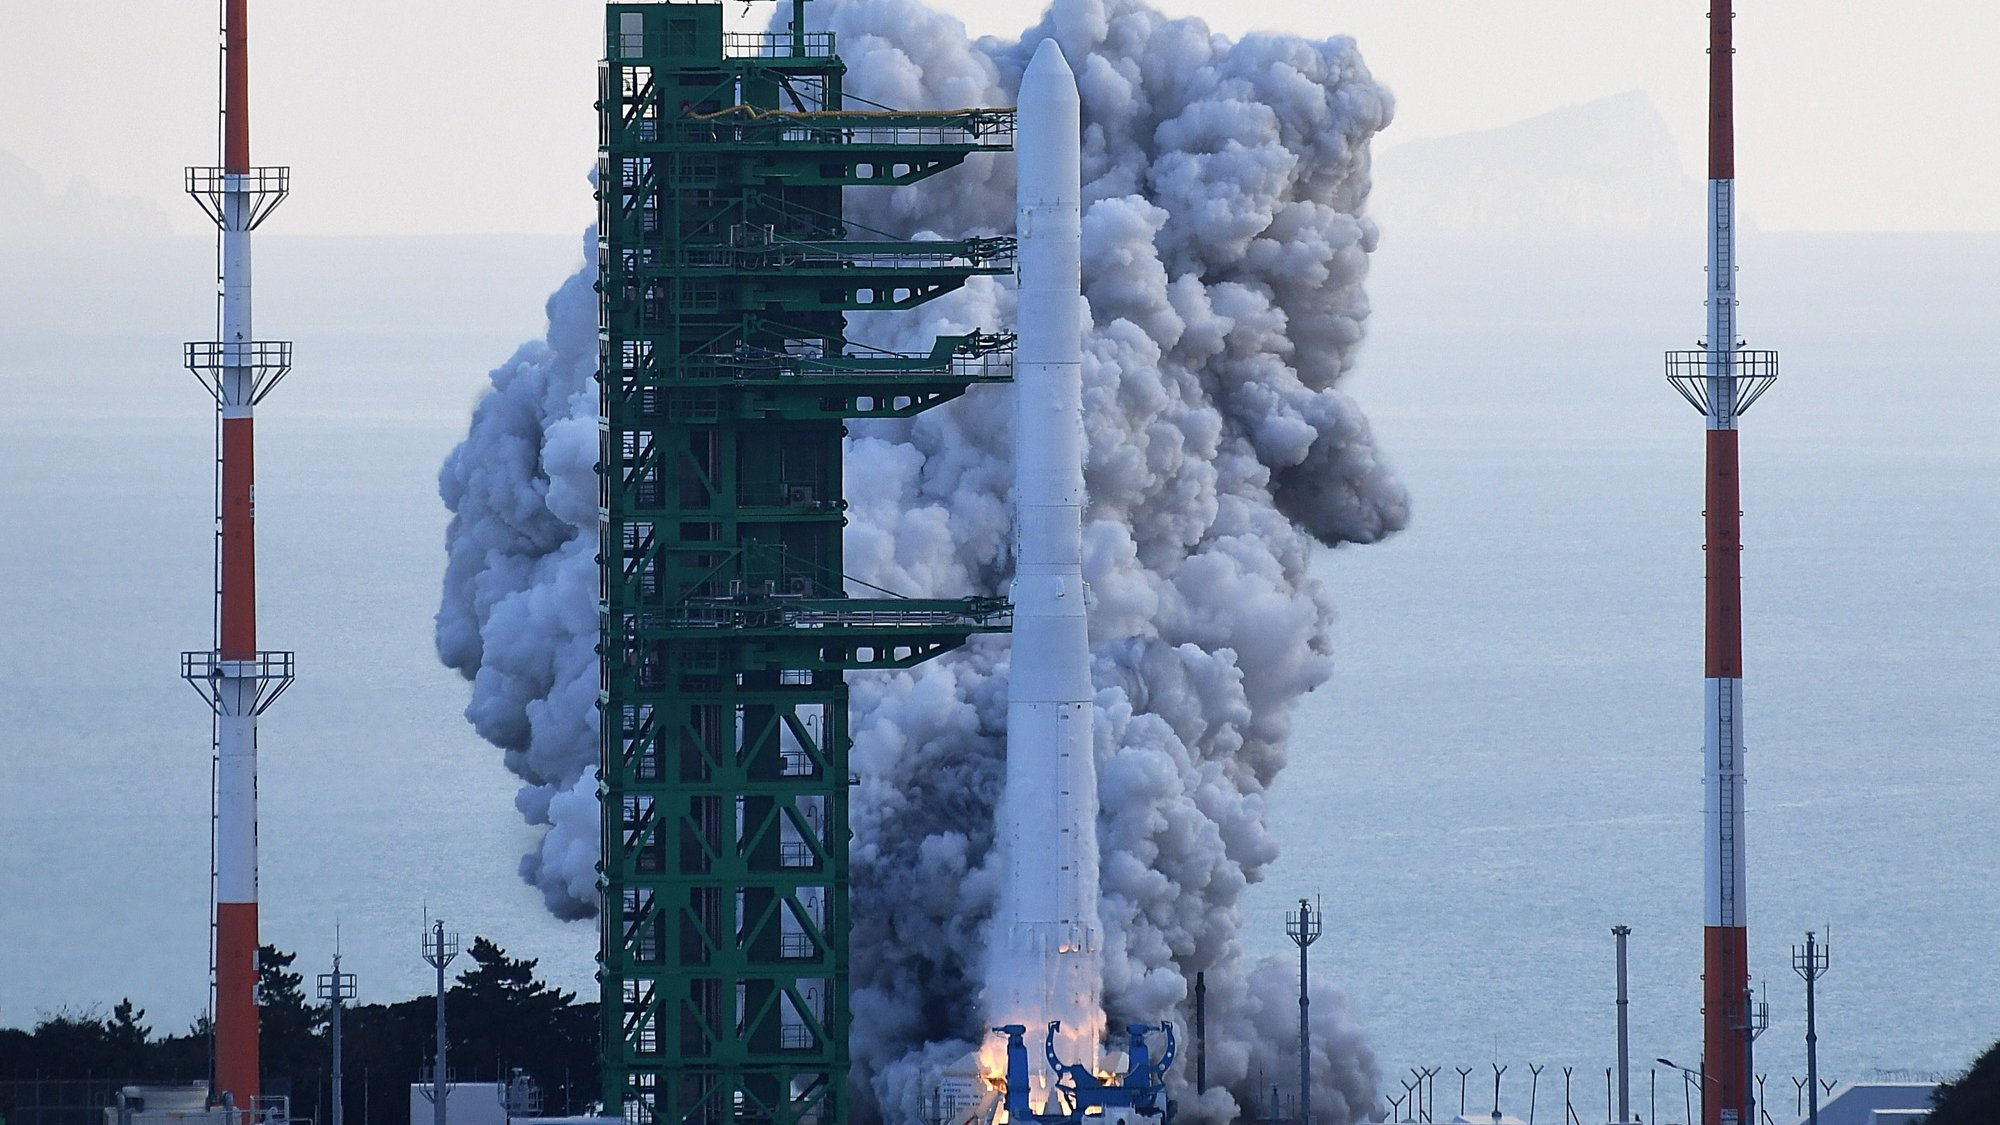 epa09535487 South Korea's first homegrown space launch vehicle, known as Nuri, lifts off from the Naro Space Center in Goheung, South Jeolla Province, some 473km south of Seoul, South Korea, 21 October 2021.  EPA/YONHAP / POOL SOUTH KOREA OUT